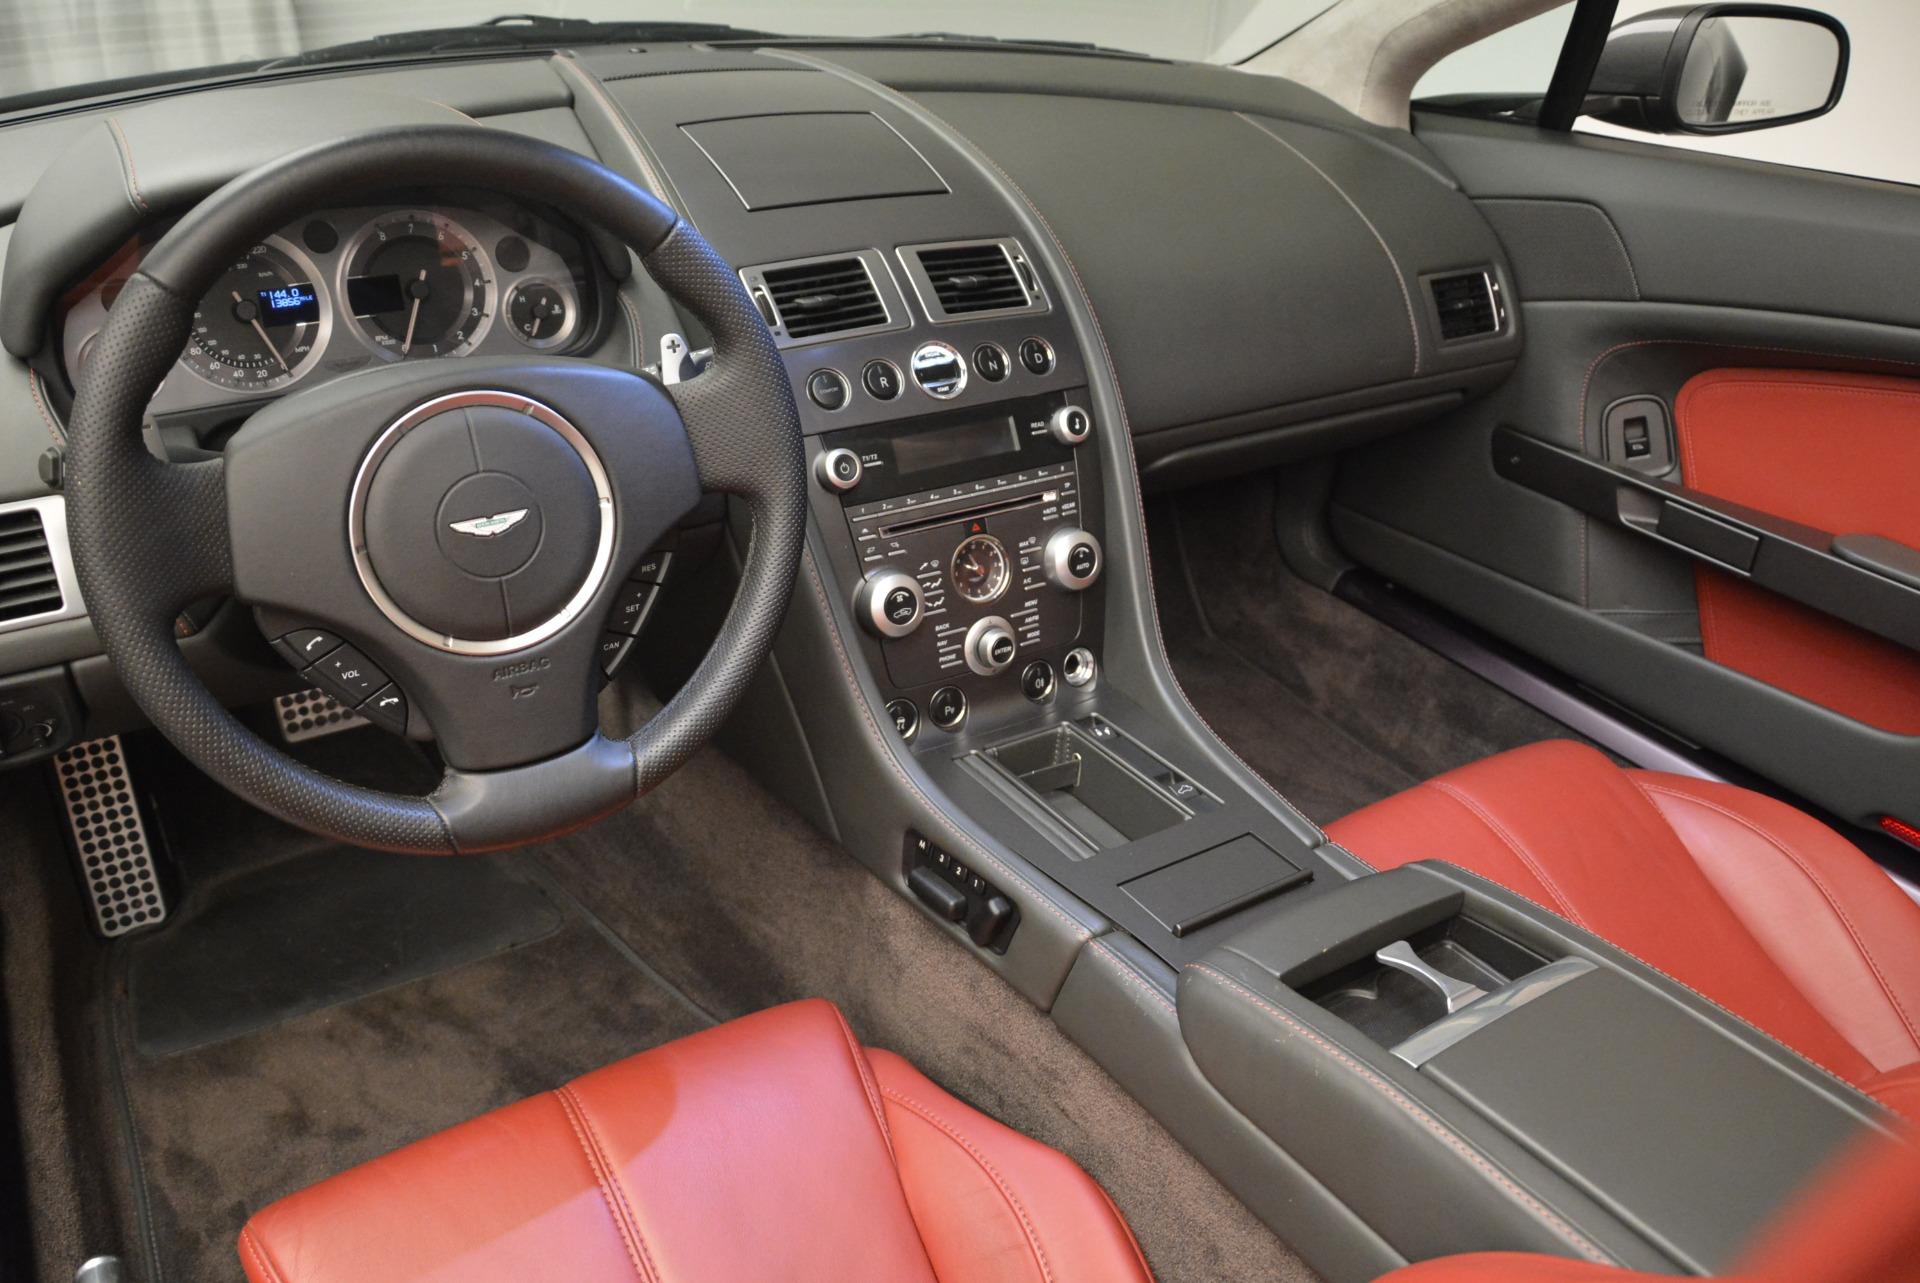 Used 2009 Aston Martin V8 Vantage Roadster For Sale In Greenwich, CT 2123_p26